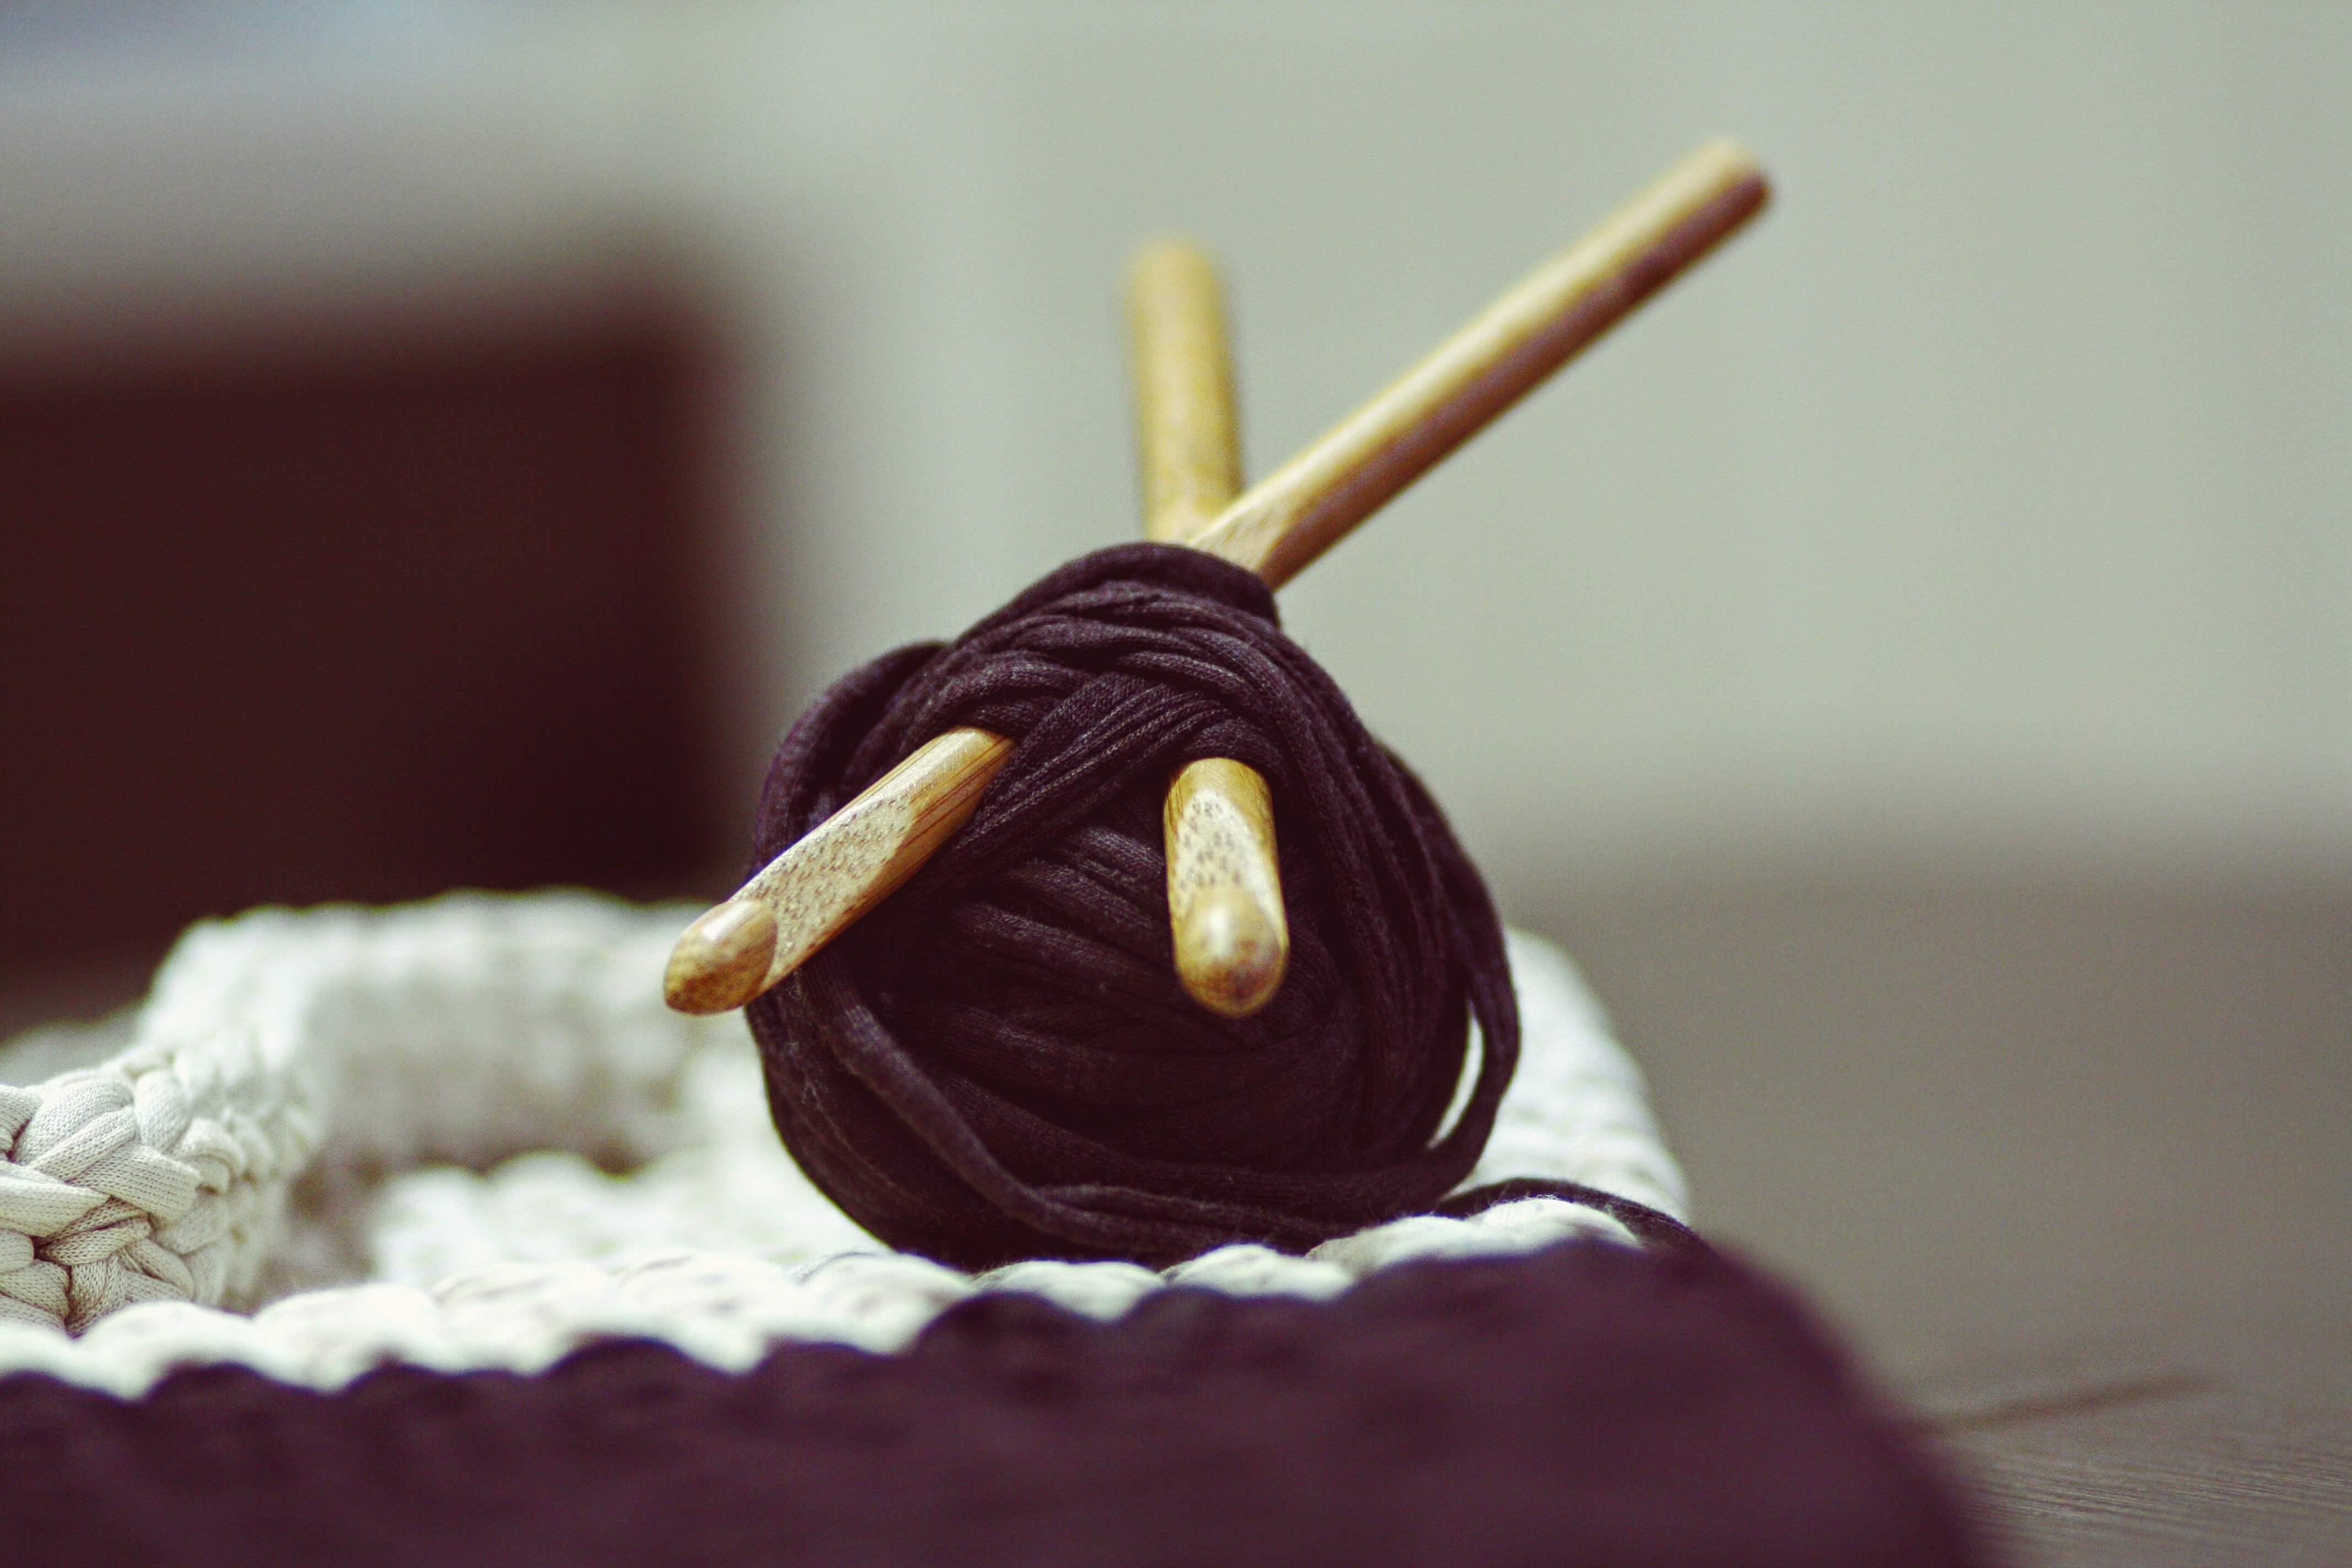 A roll of yarn with wooden knitting needles pierced through next to a weaved fabric